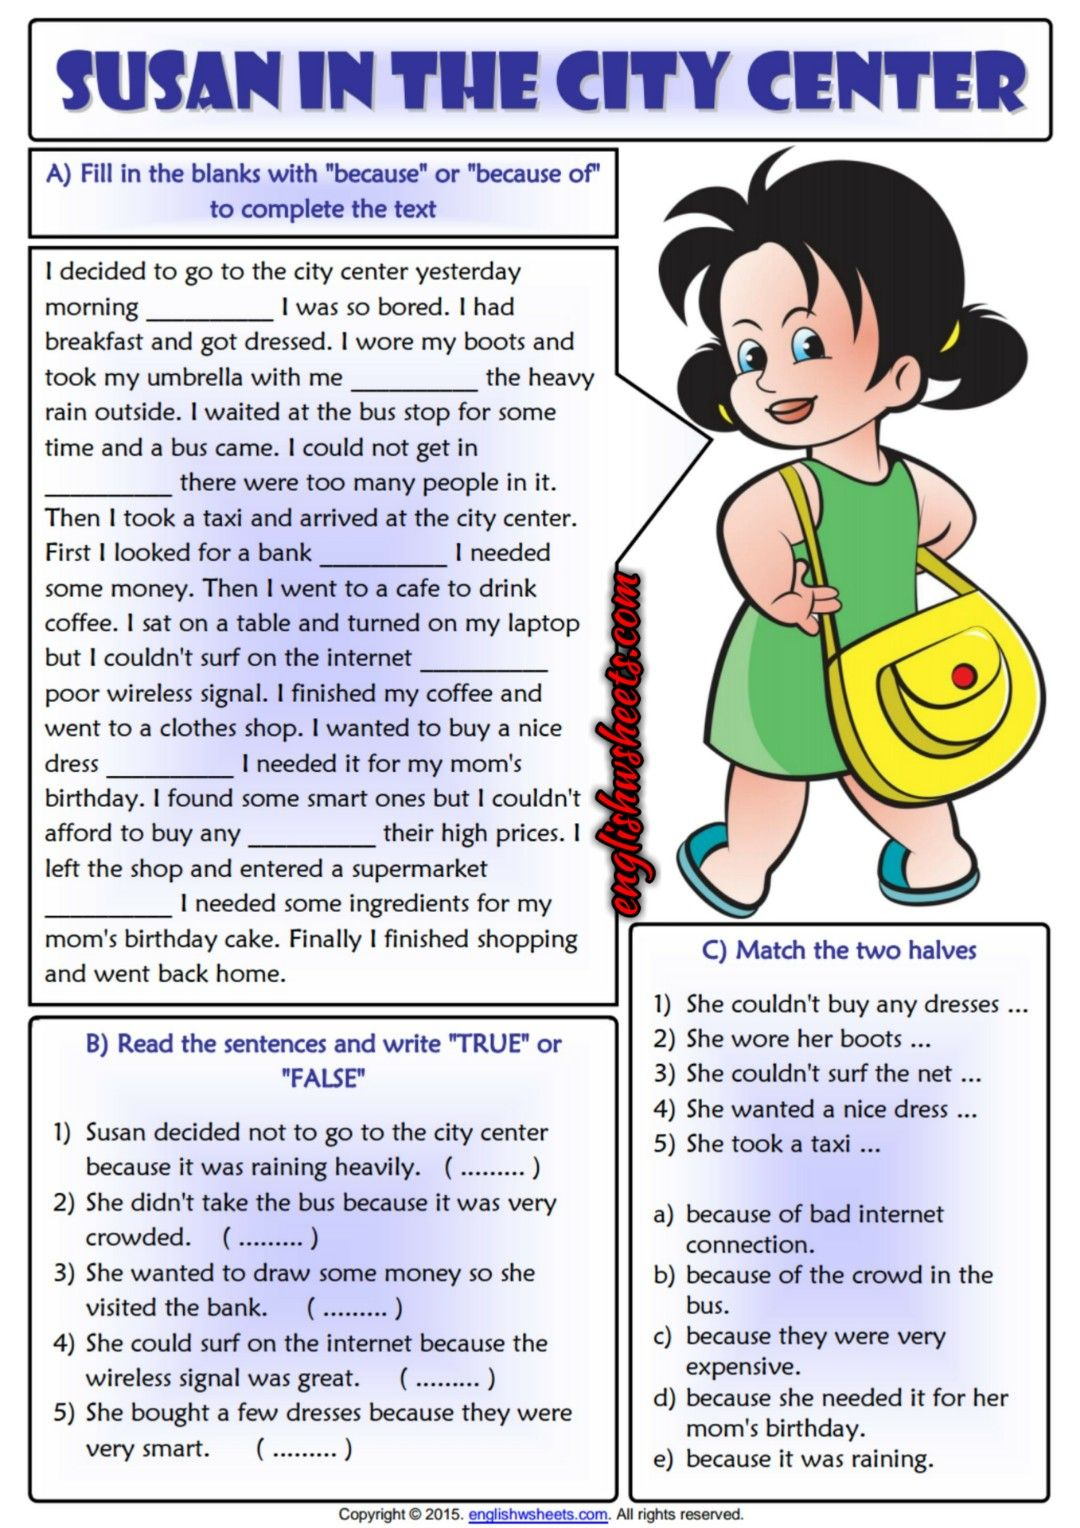 Because or Because of Reading Text Exercises Worksheet | ESL 2 ...